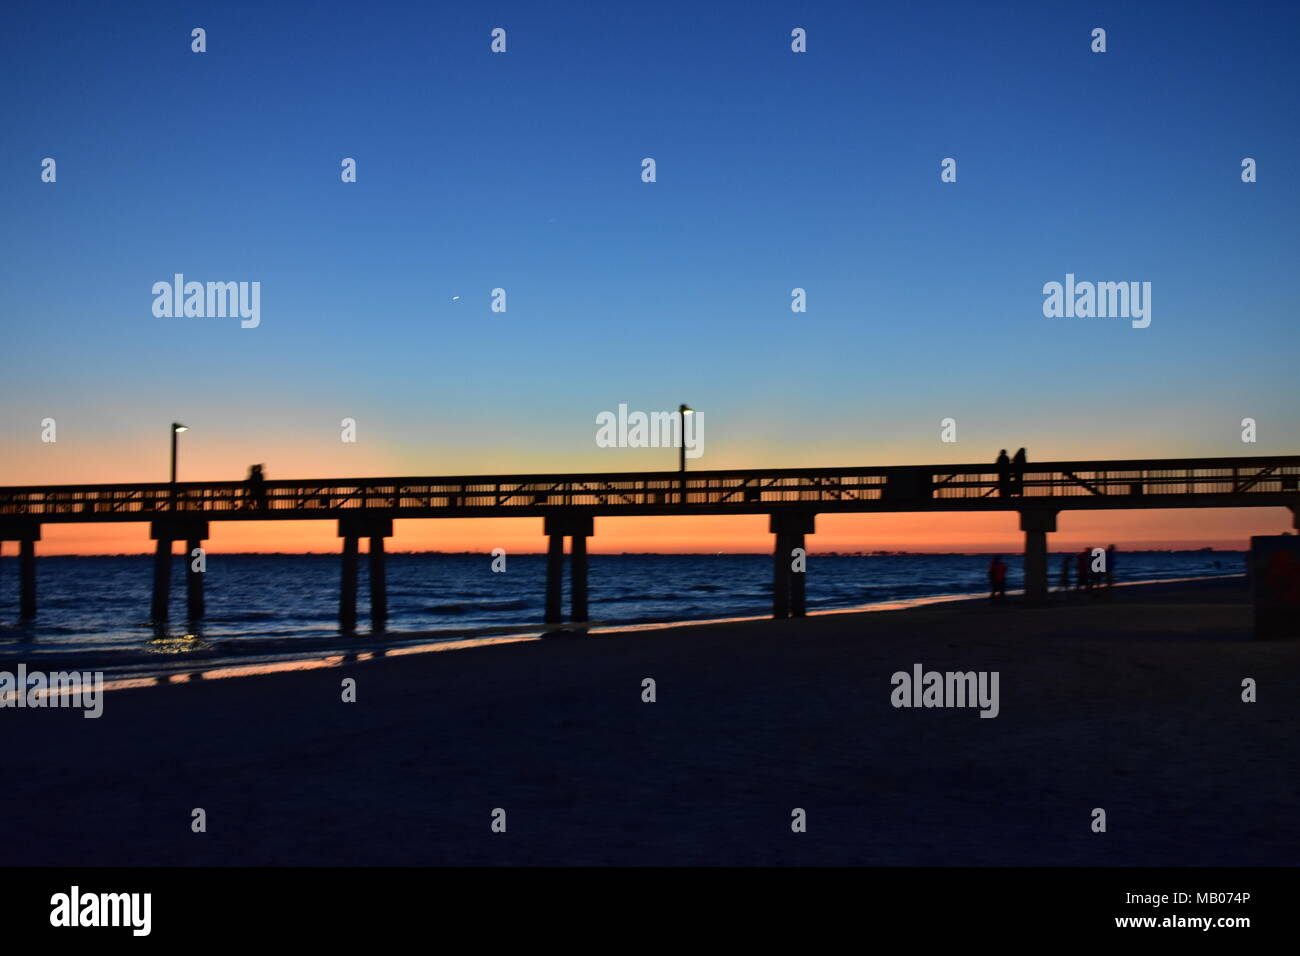 Sunset behind the Pier - Stock Image